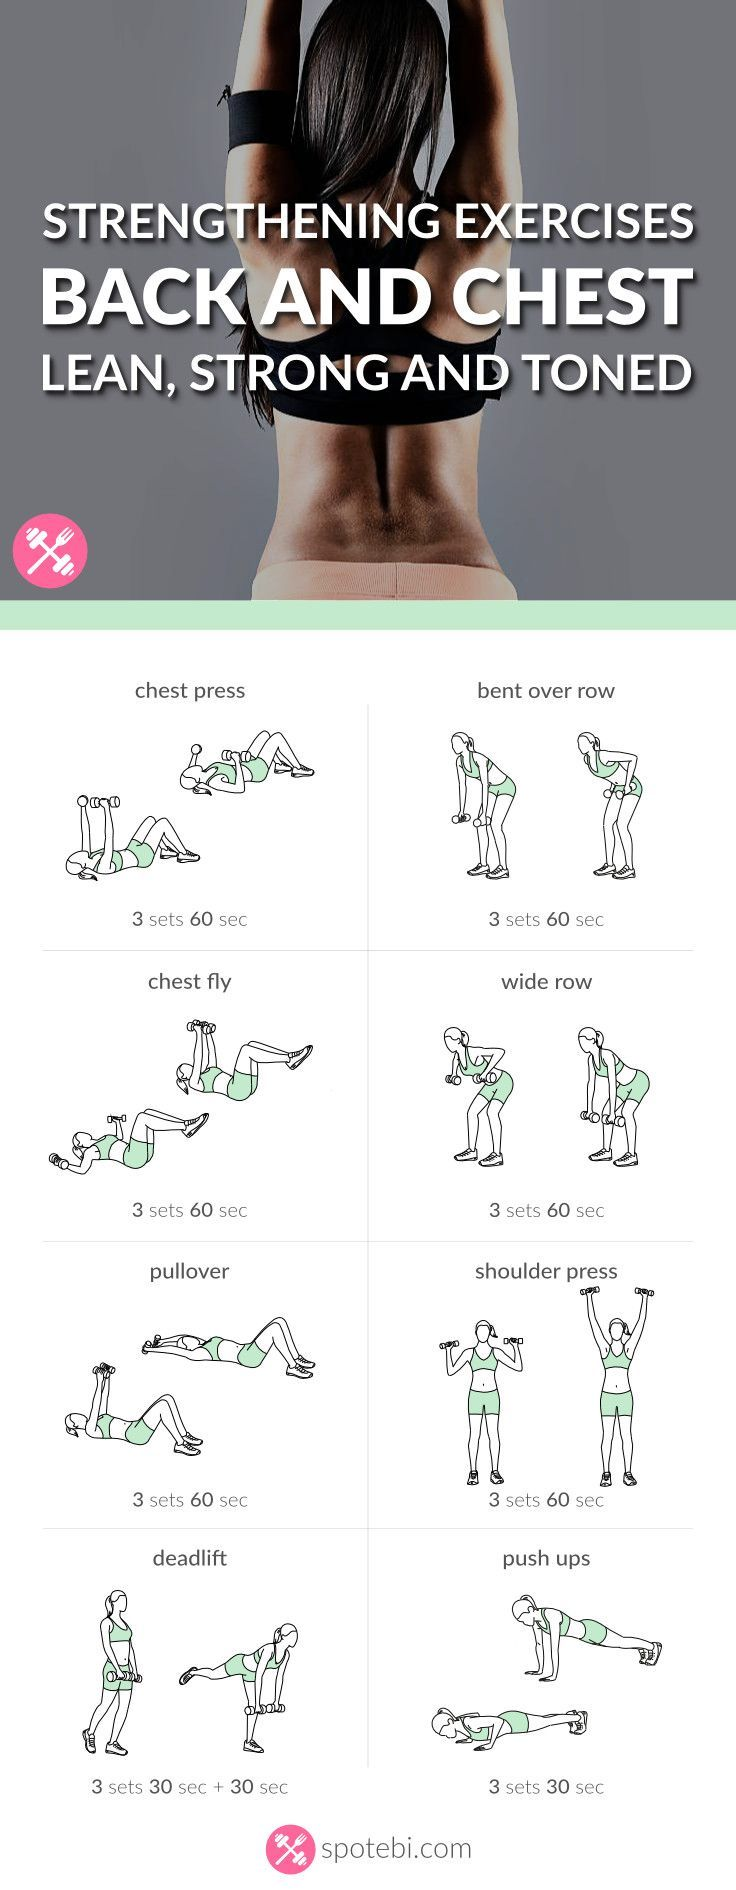 Lift your breasts naturally! Try these chest and back strengthening exercises fo...